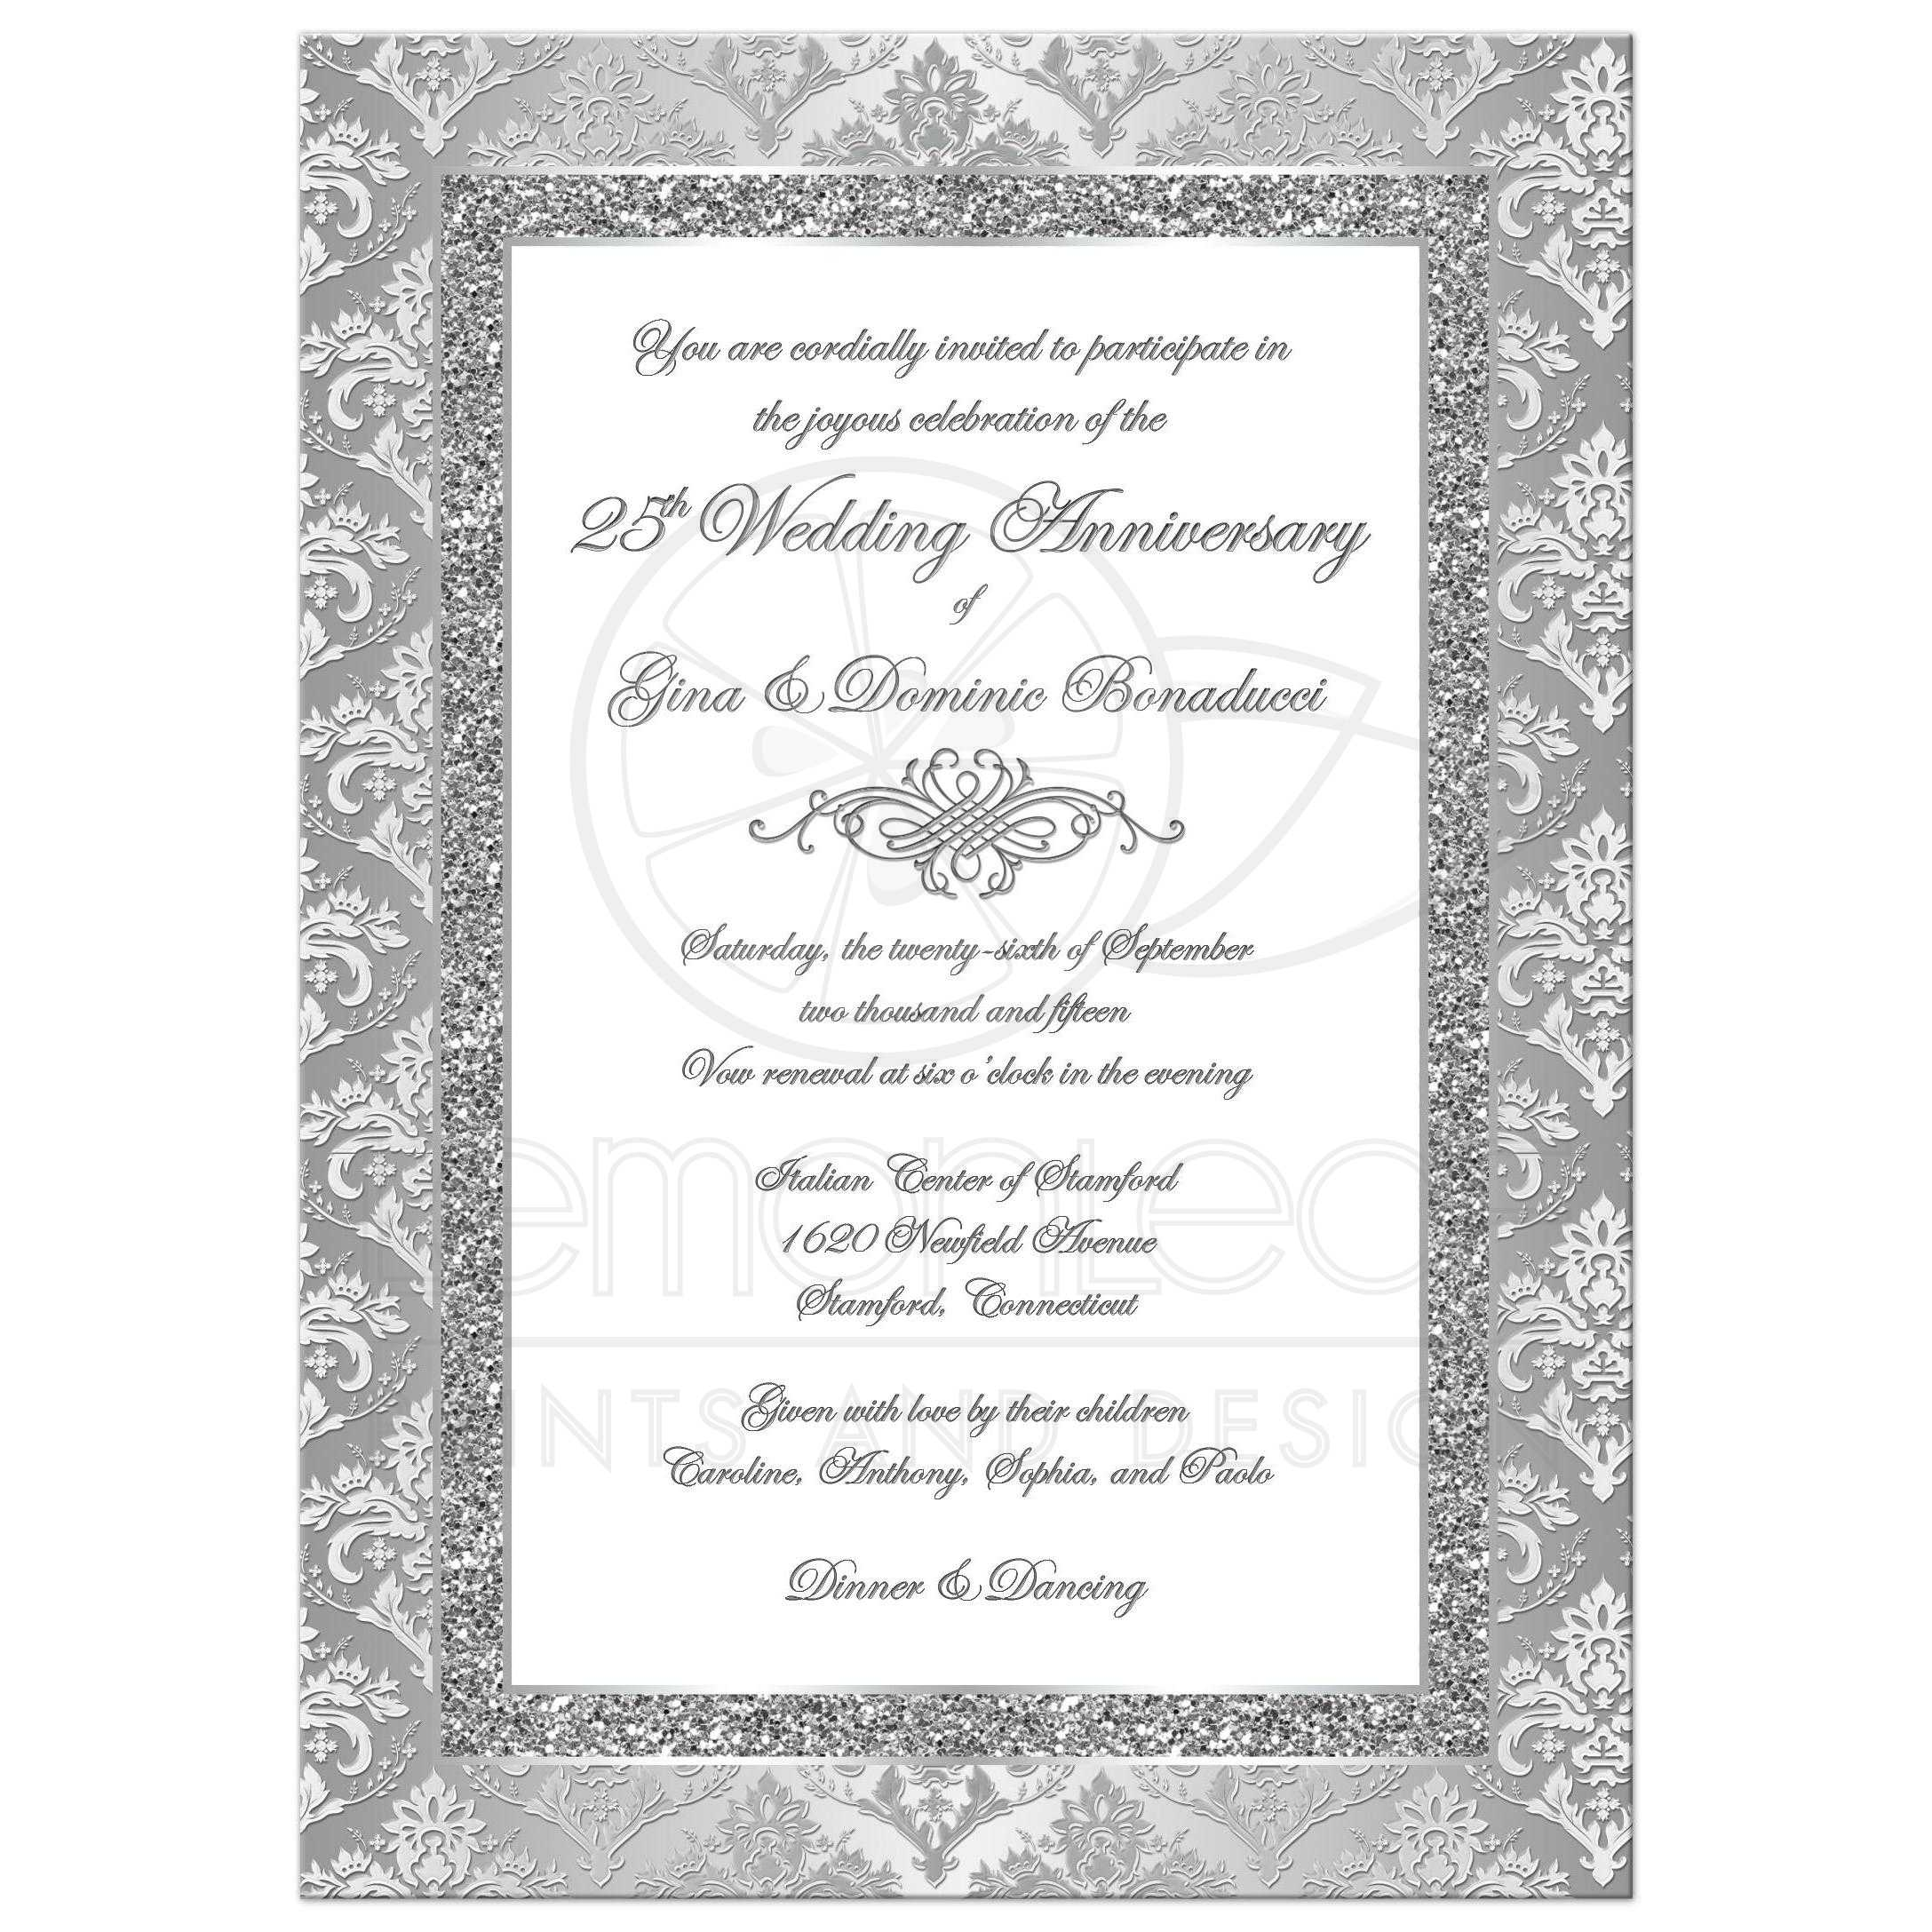 25th Wedding Anniversary Invitation | Silver and White Damask 2 ...